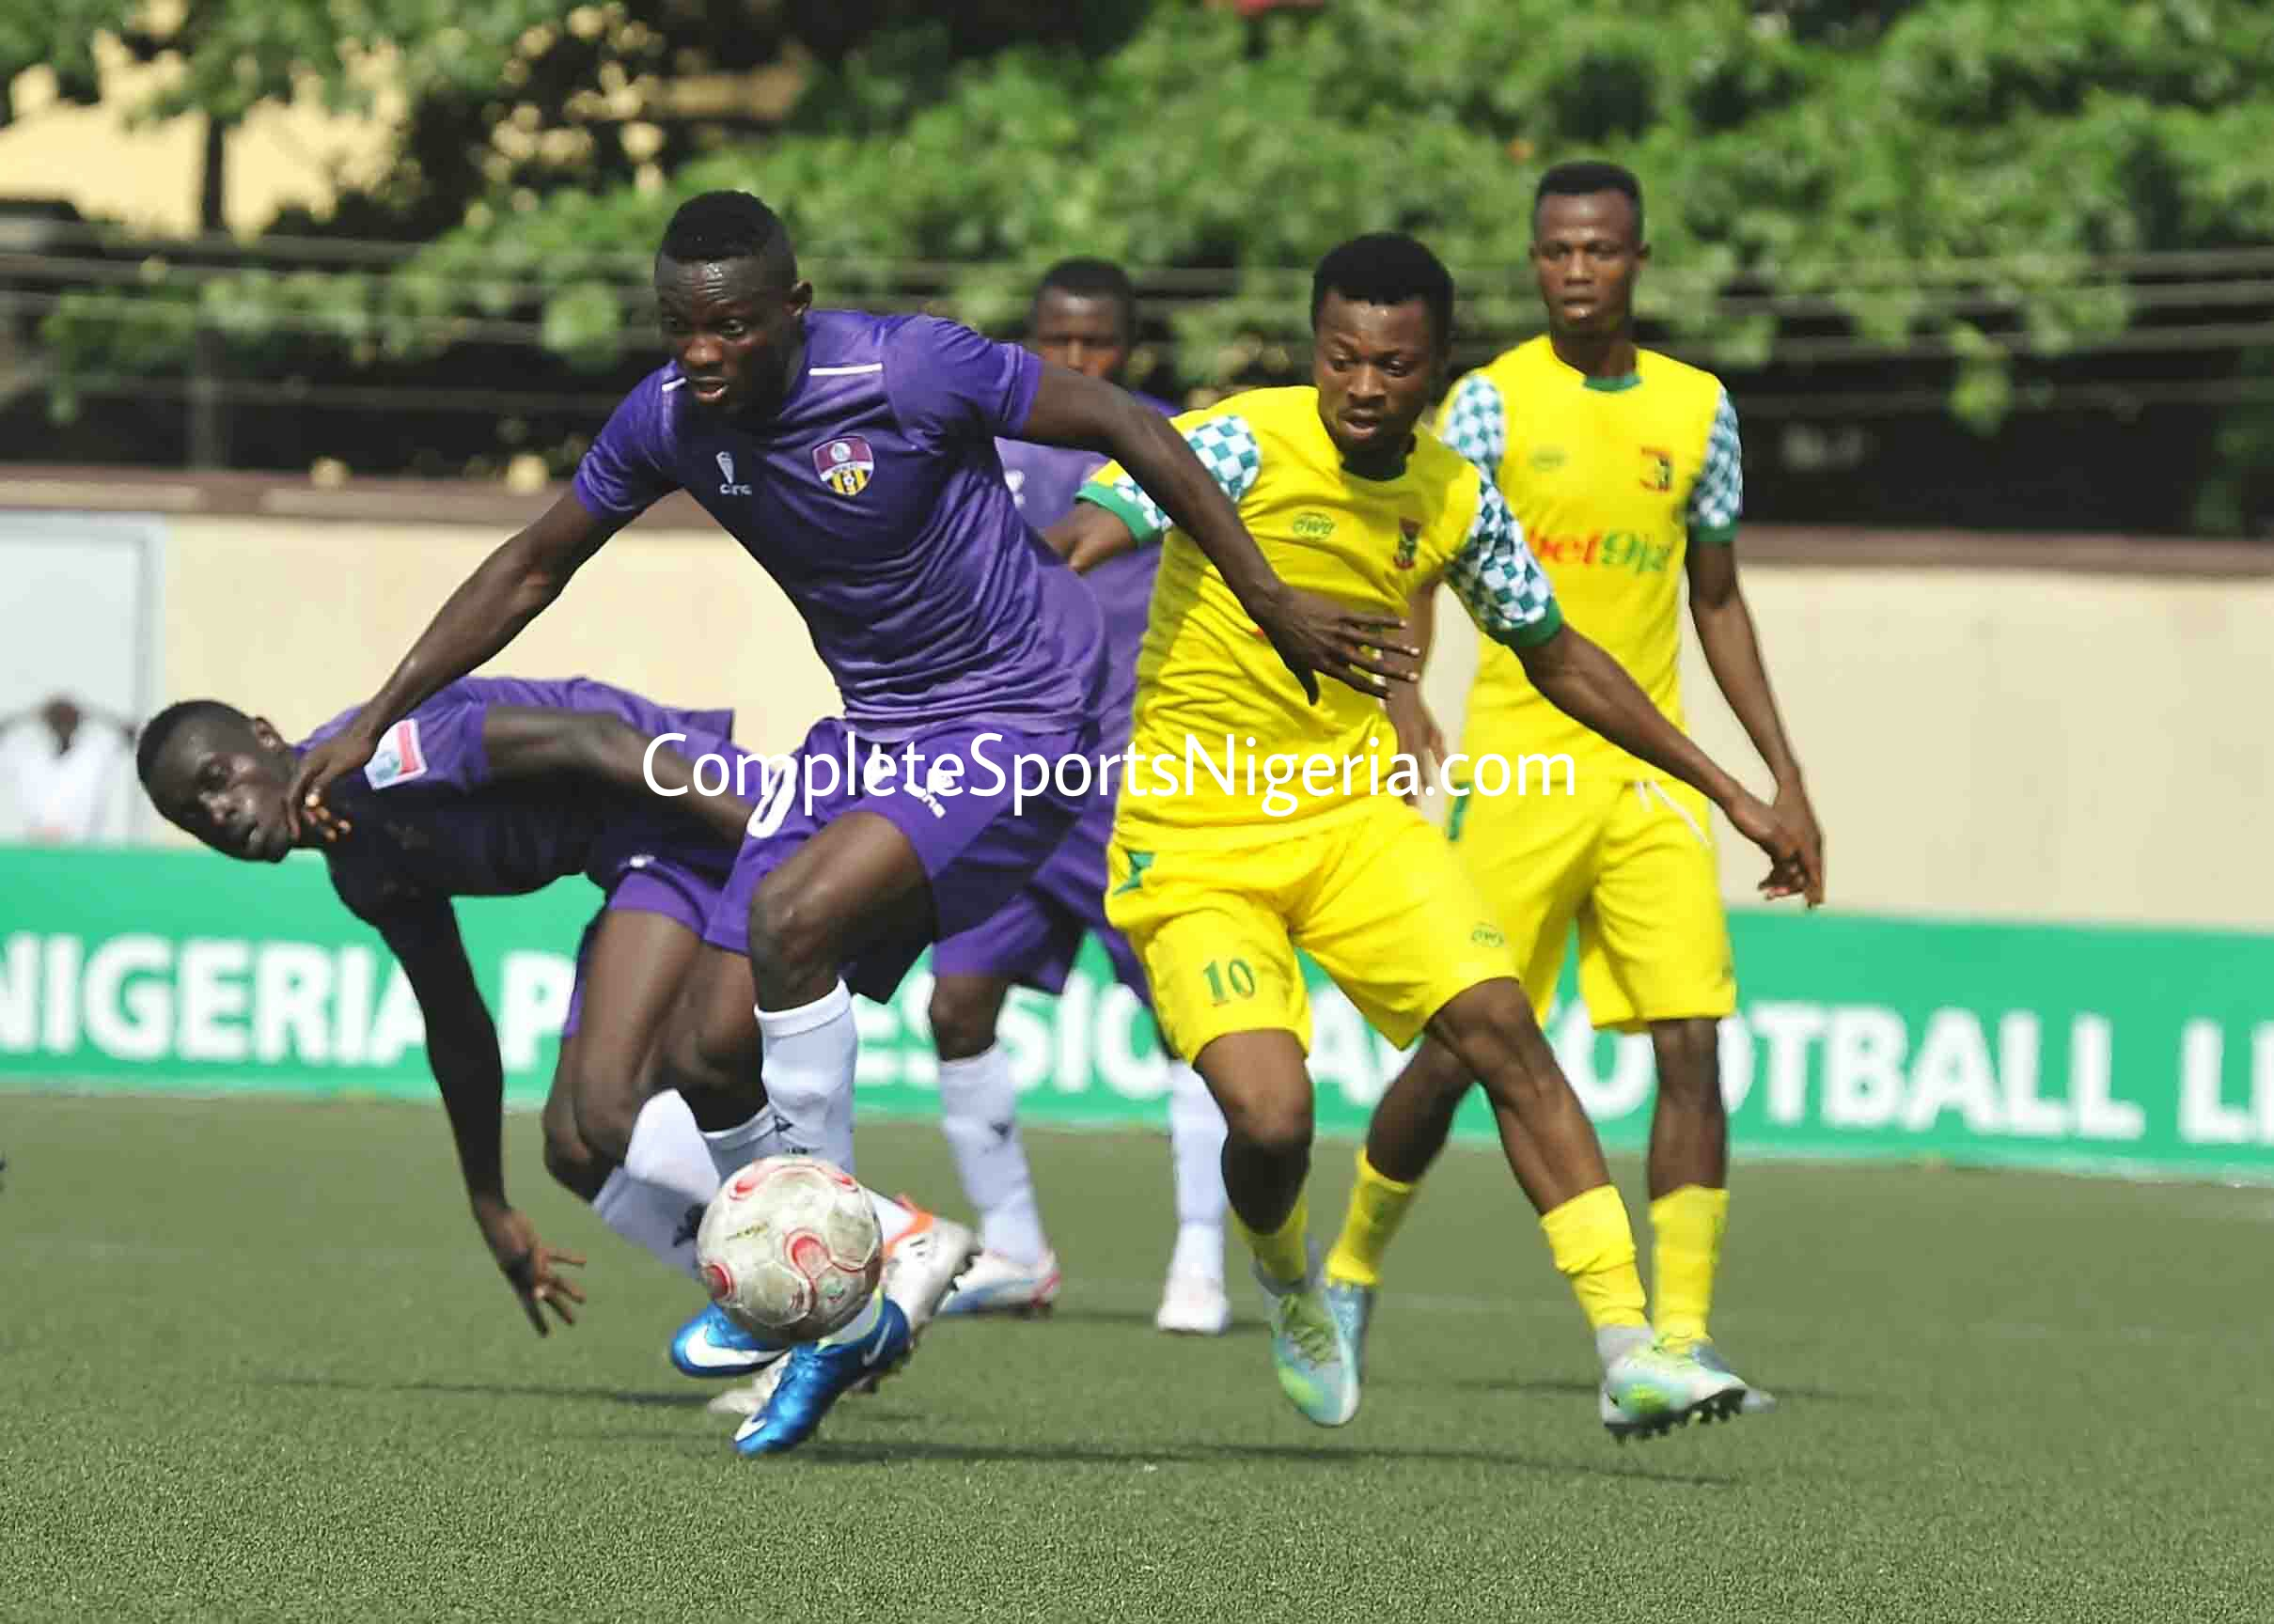 NPFL: Pillars Chase Top Spot To Plateau;  Enyimba Welcome MFM